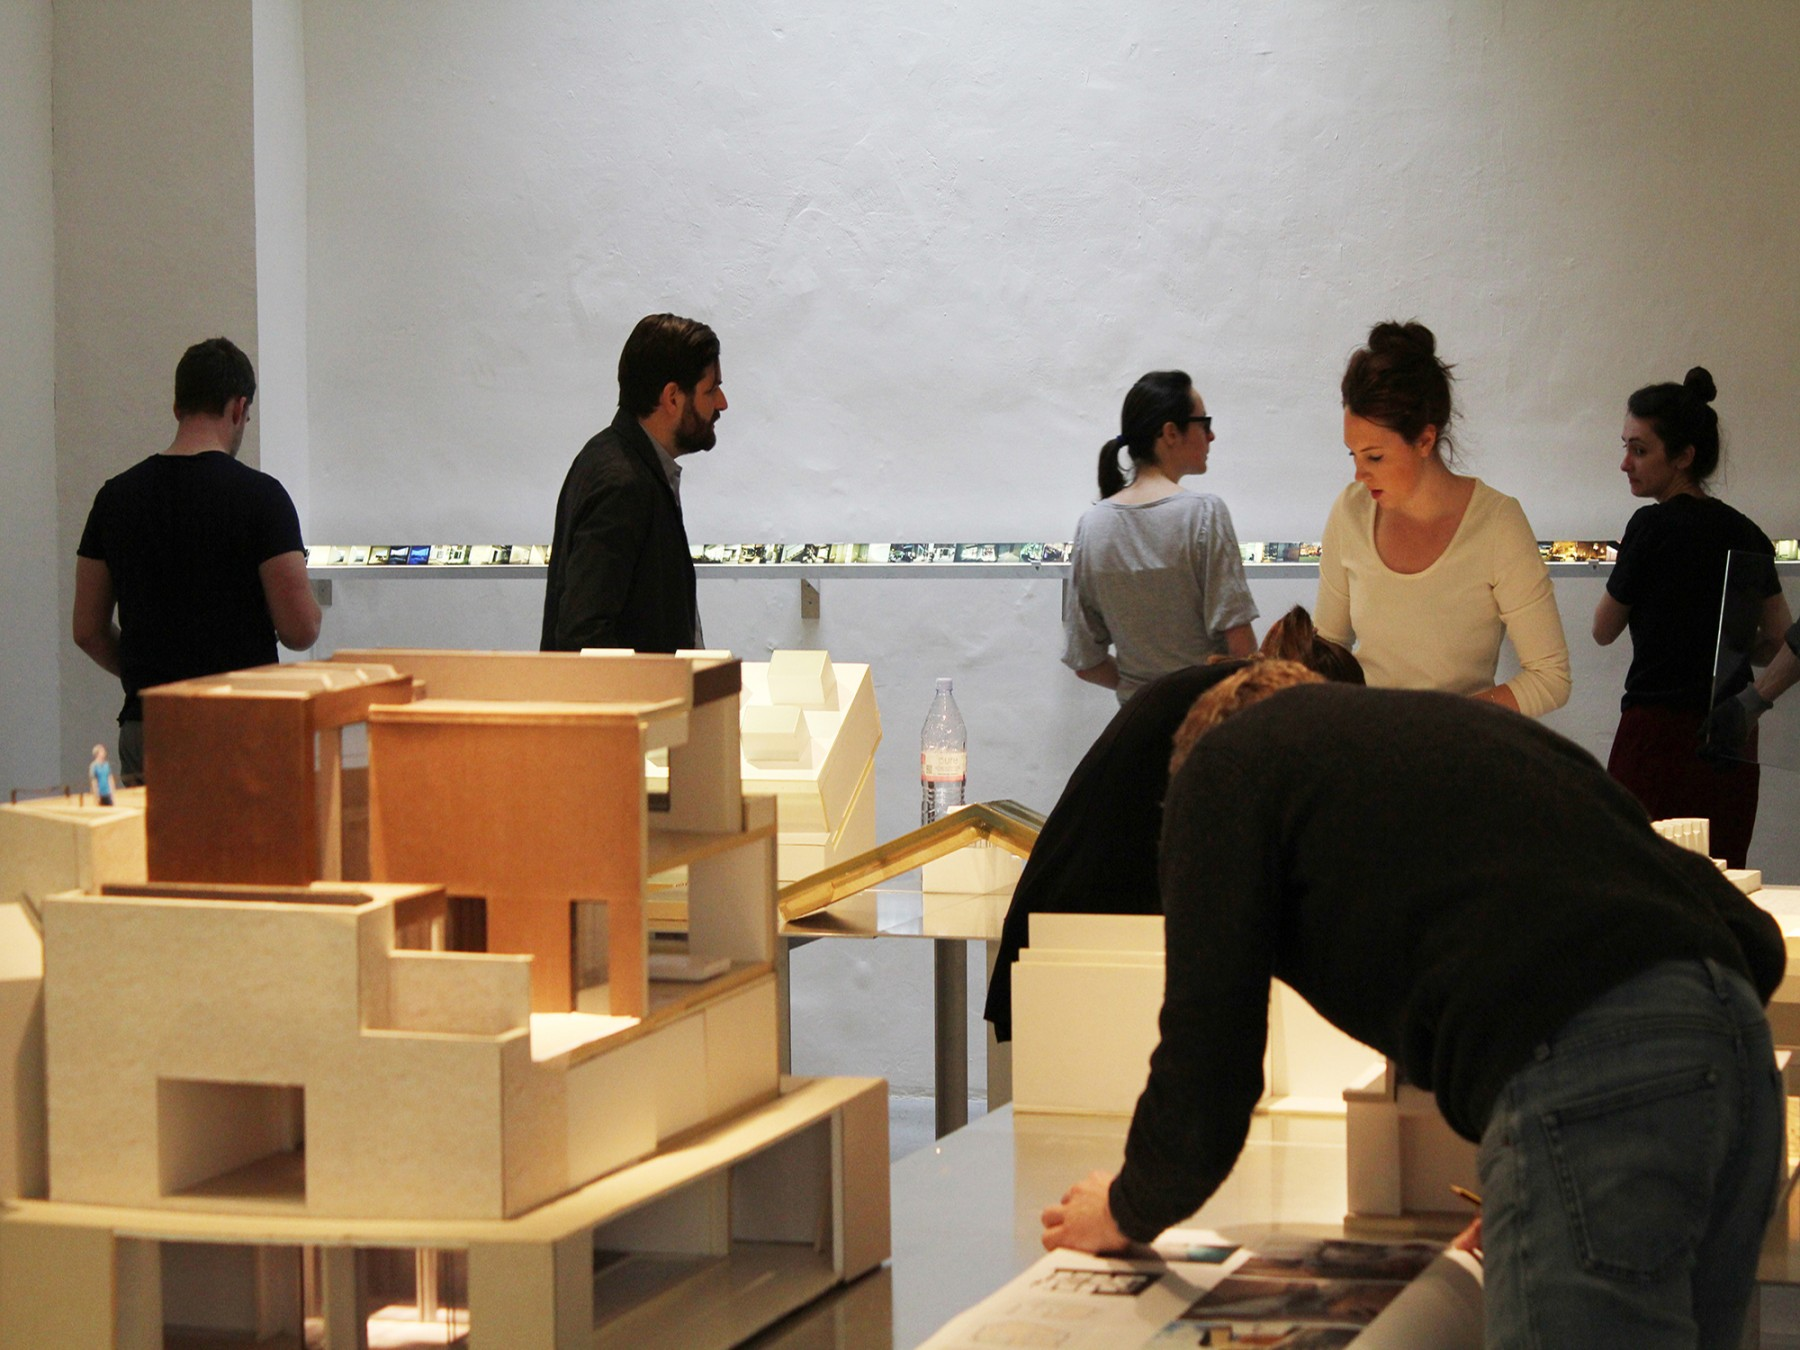 Jamie-Fobert-Architects-working-in-architecture-exhibition-installation-development 1